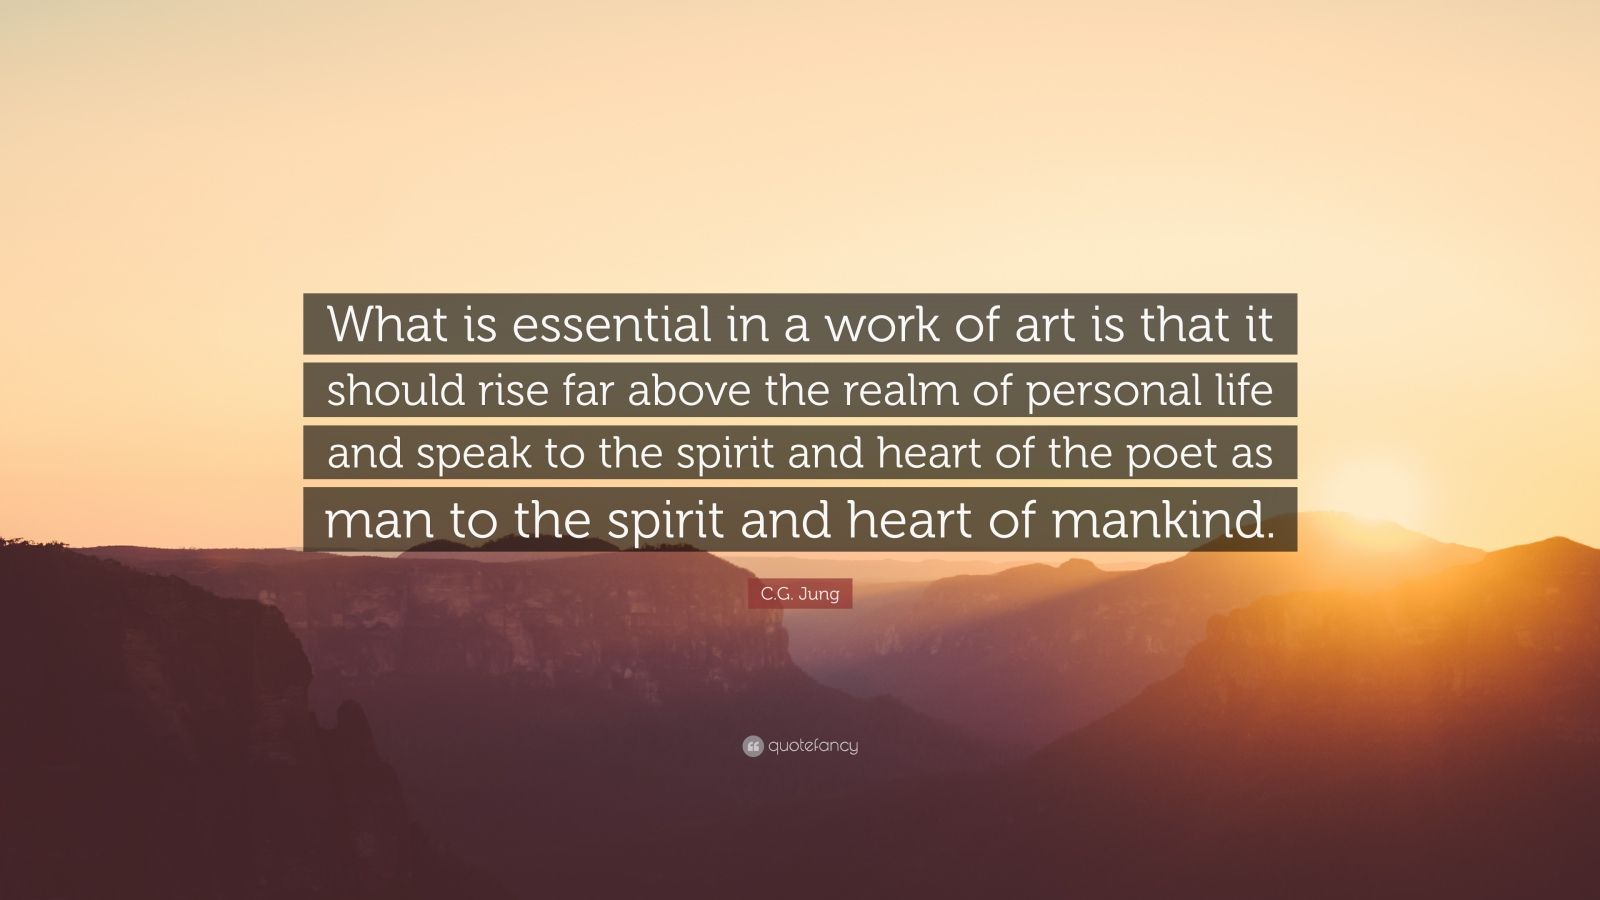 """C.G. Jung Quote: """"What is essential in a work of art is that it should rise far above the realm of personal life and speak to the spirit and heart of the poet as man to the spirit and heart of mankind."""""""